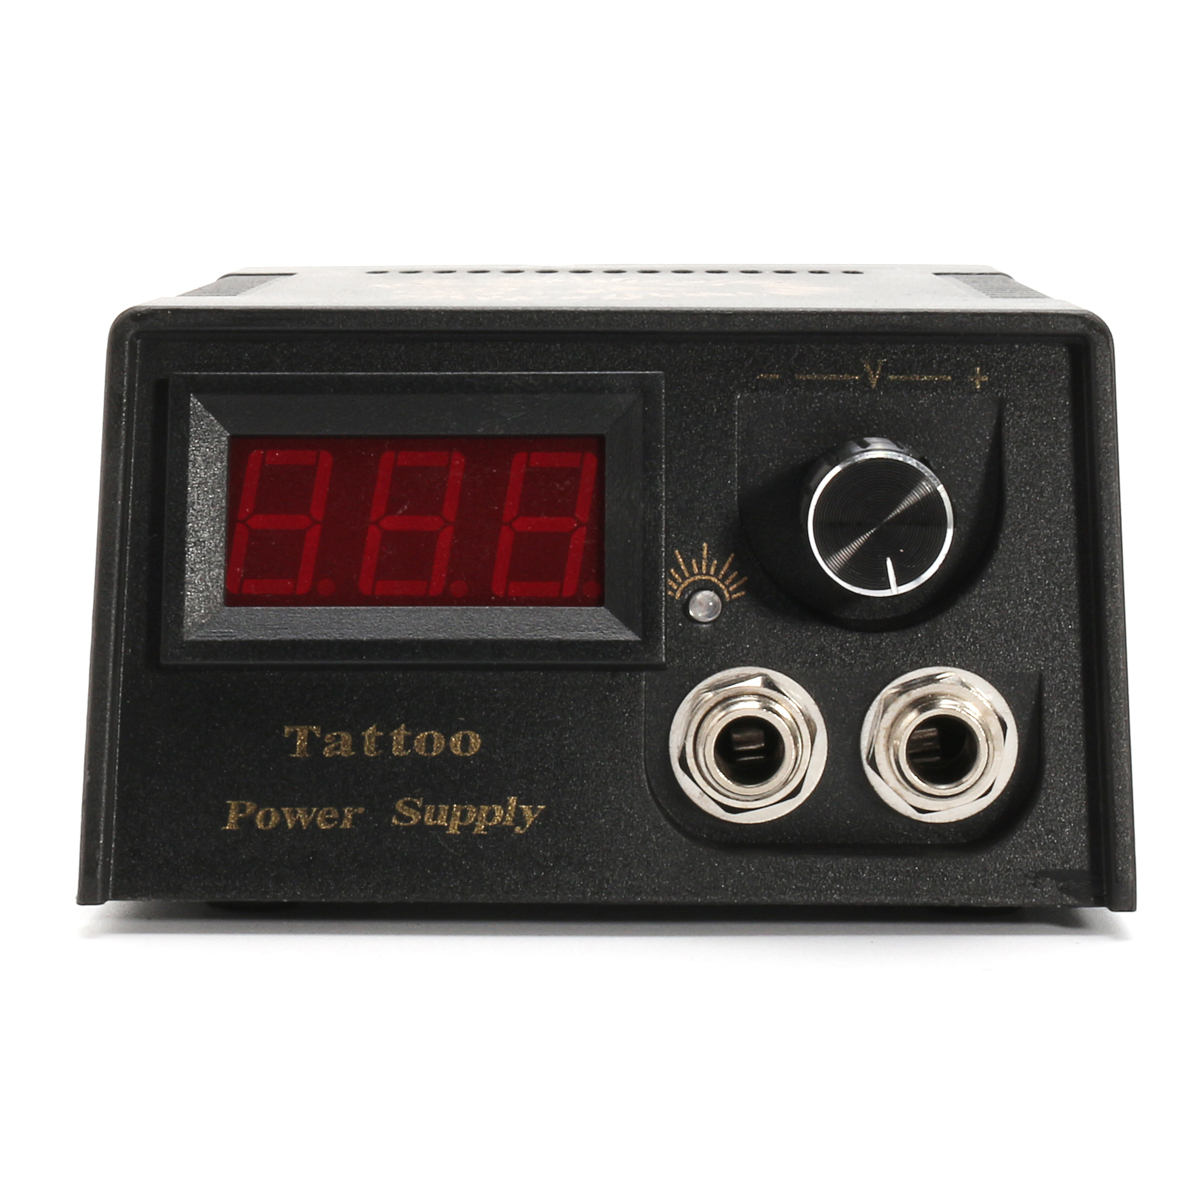 LCD Professional Tattoo Digital Dual Power Supply For Foot Pedal Switch Machine